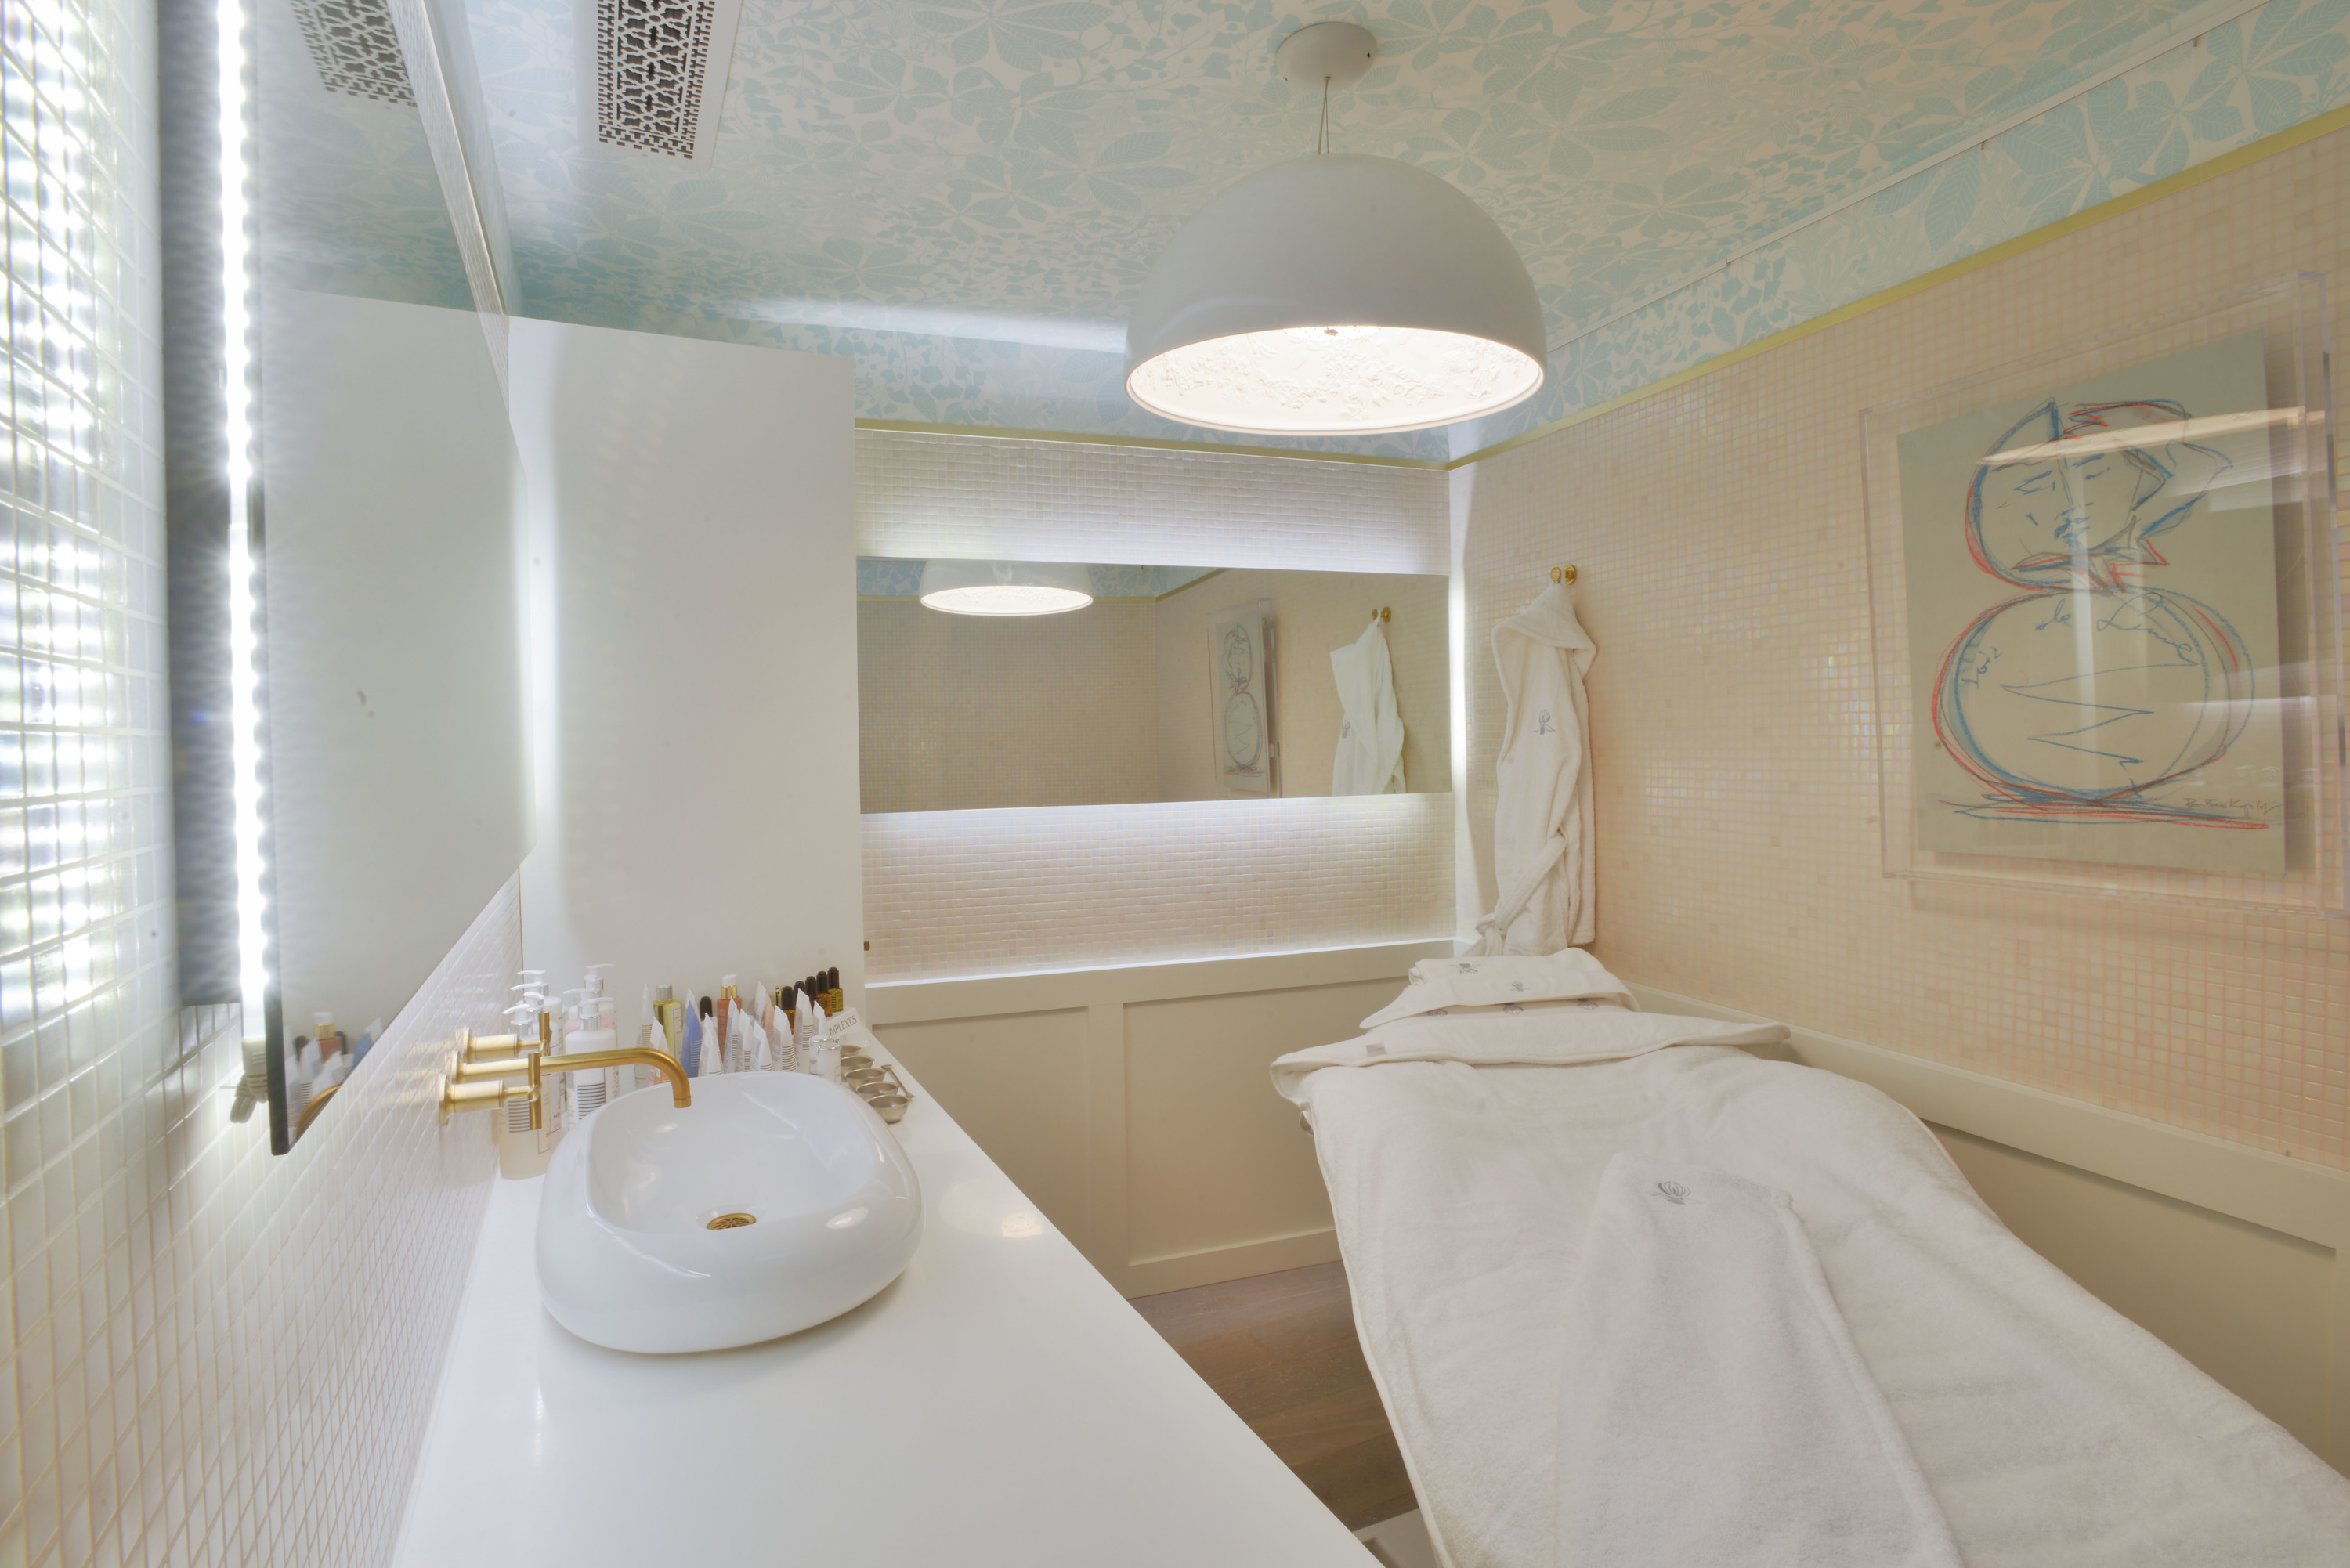 You can book luxurious $50 treatments for Spa Week today!